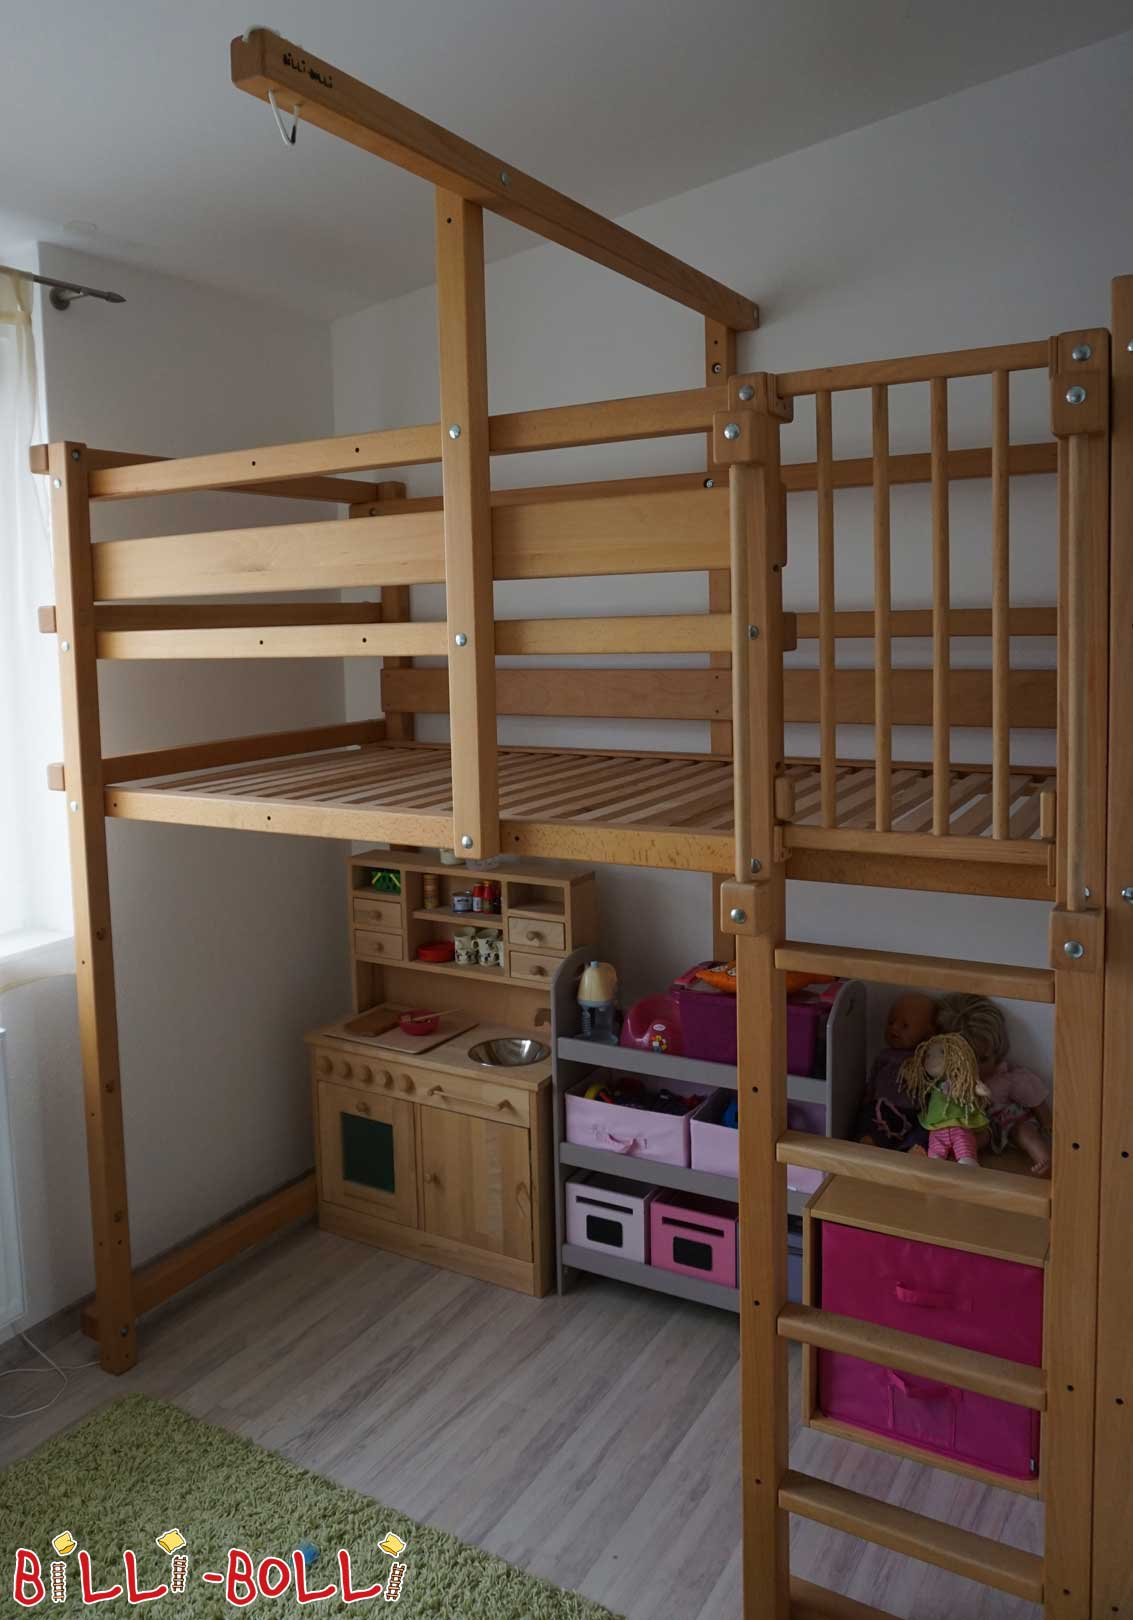 Second hand page 5 billi bolli kids furniture for Second hand bunk beds